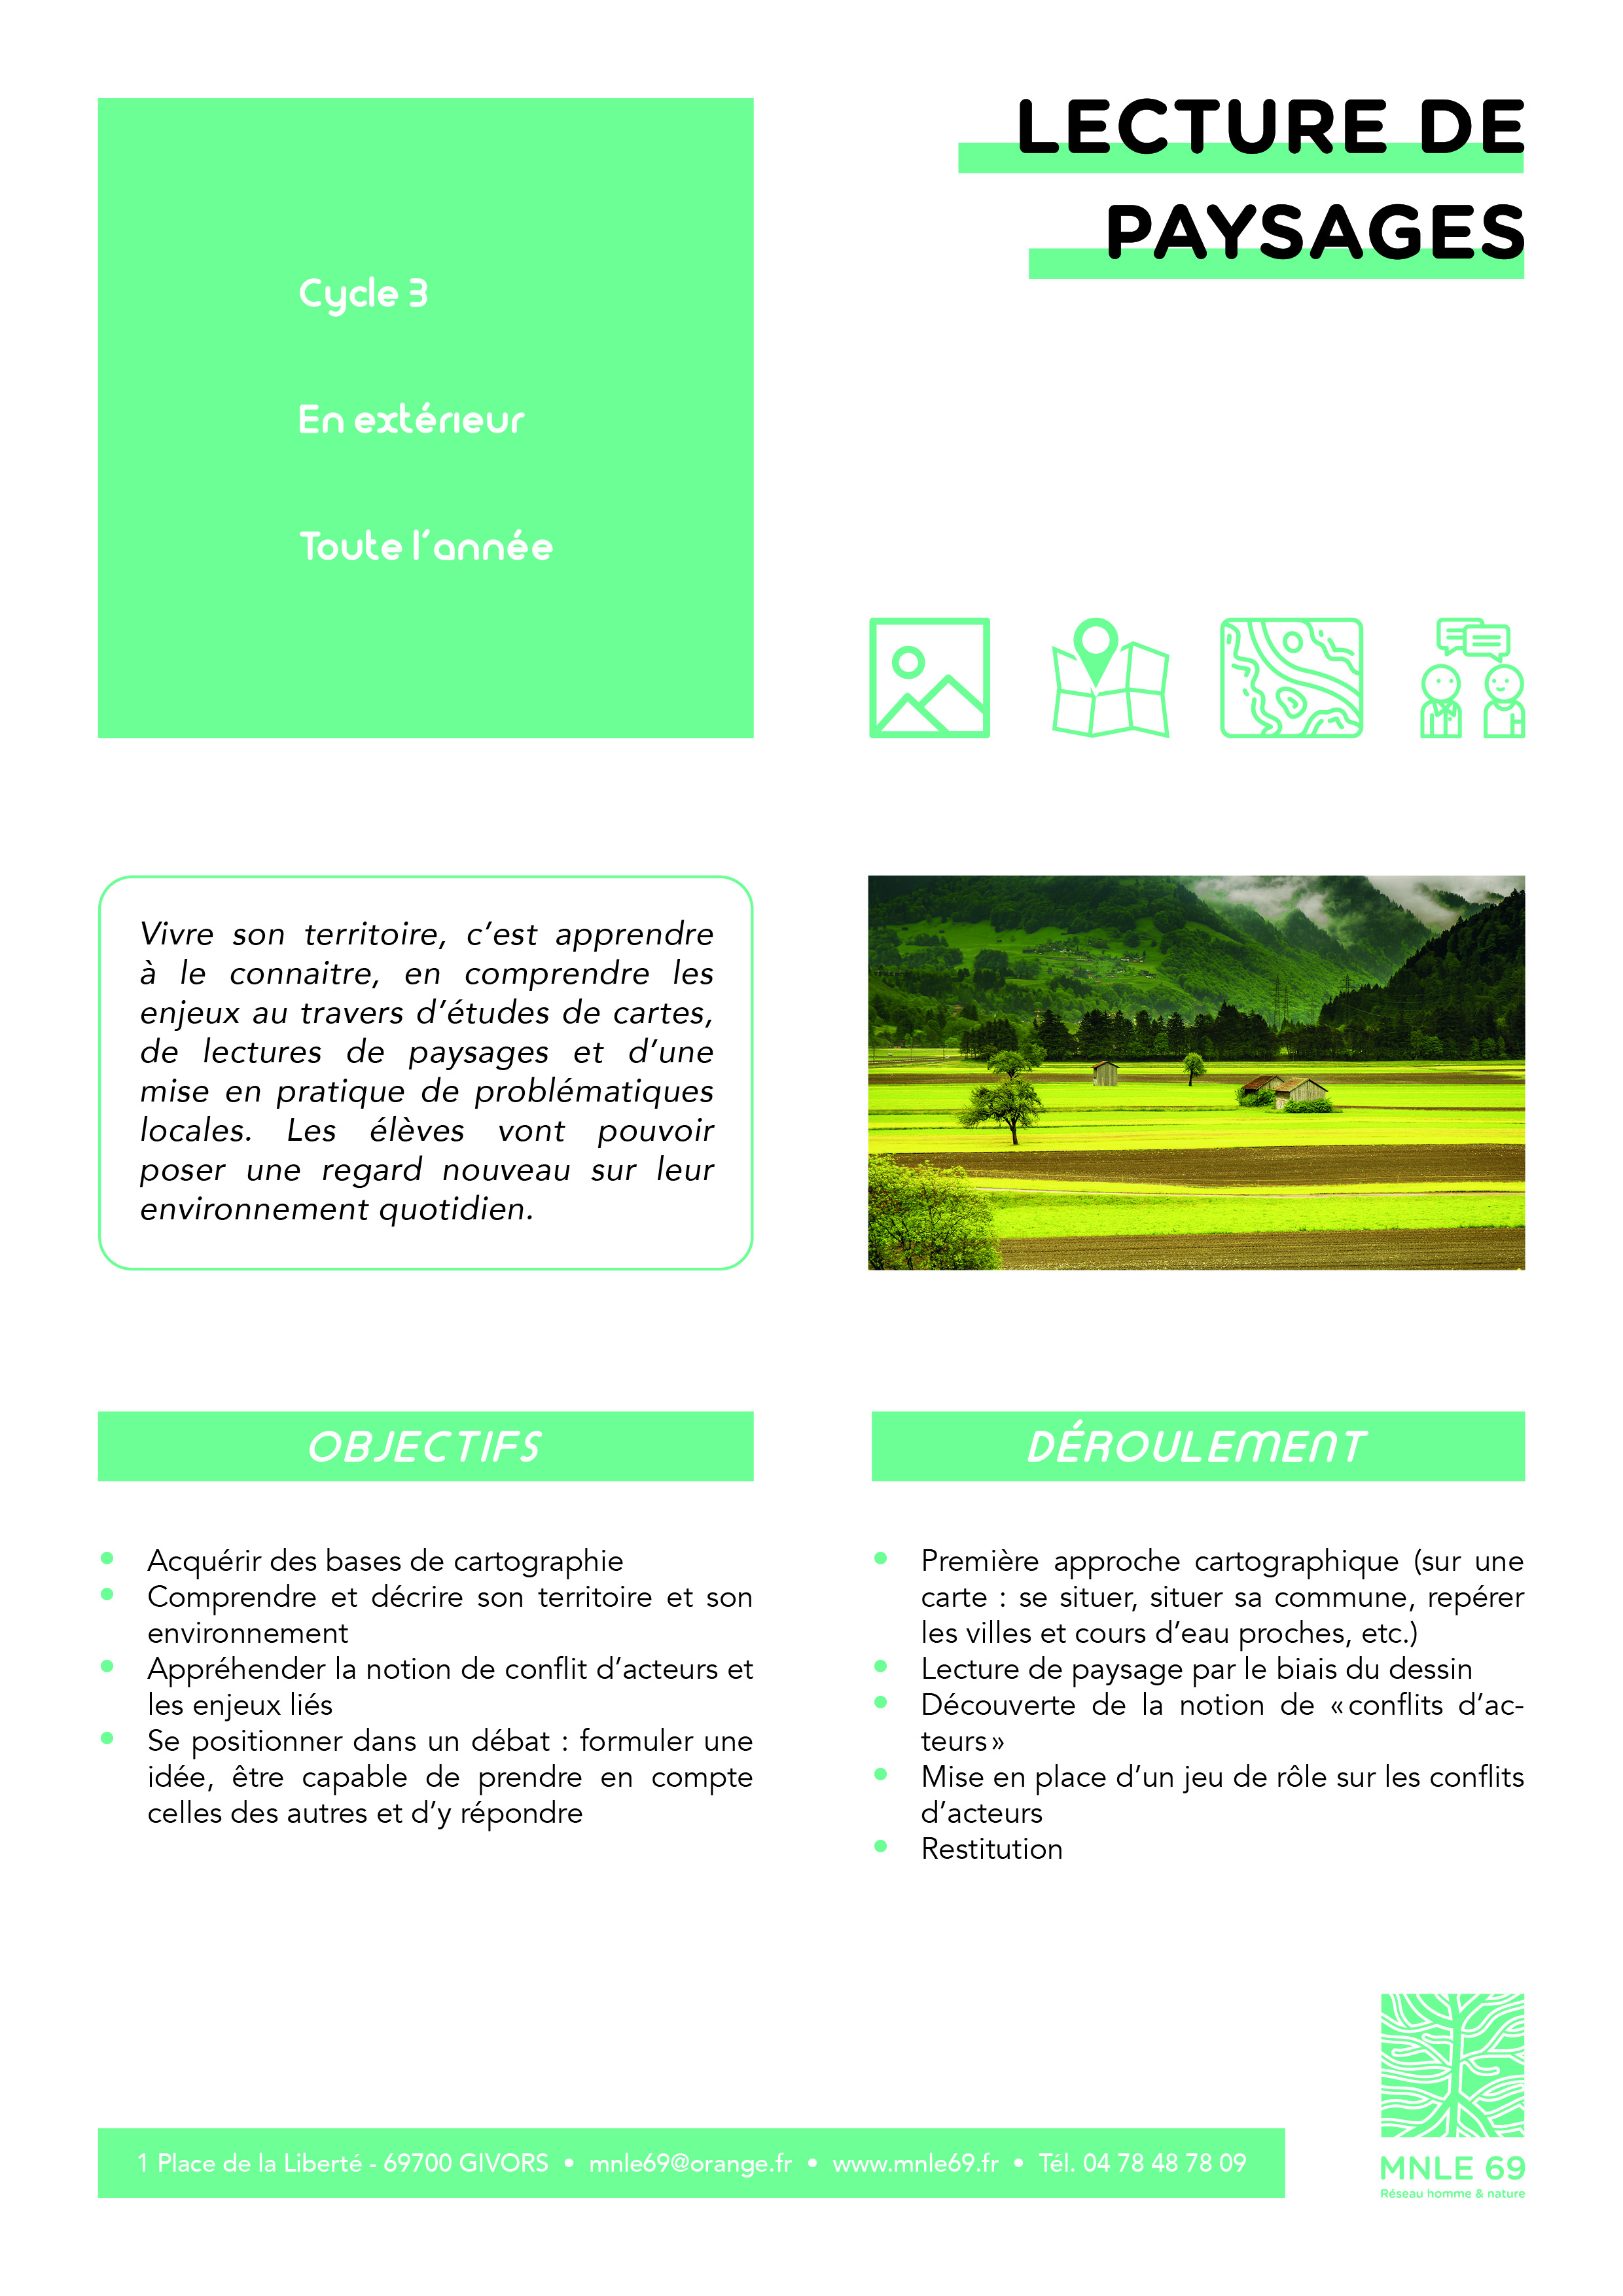 LectureDePaysages